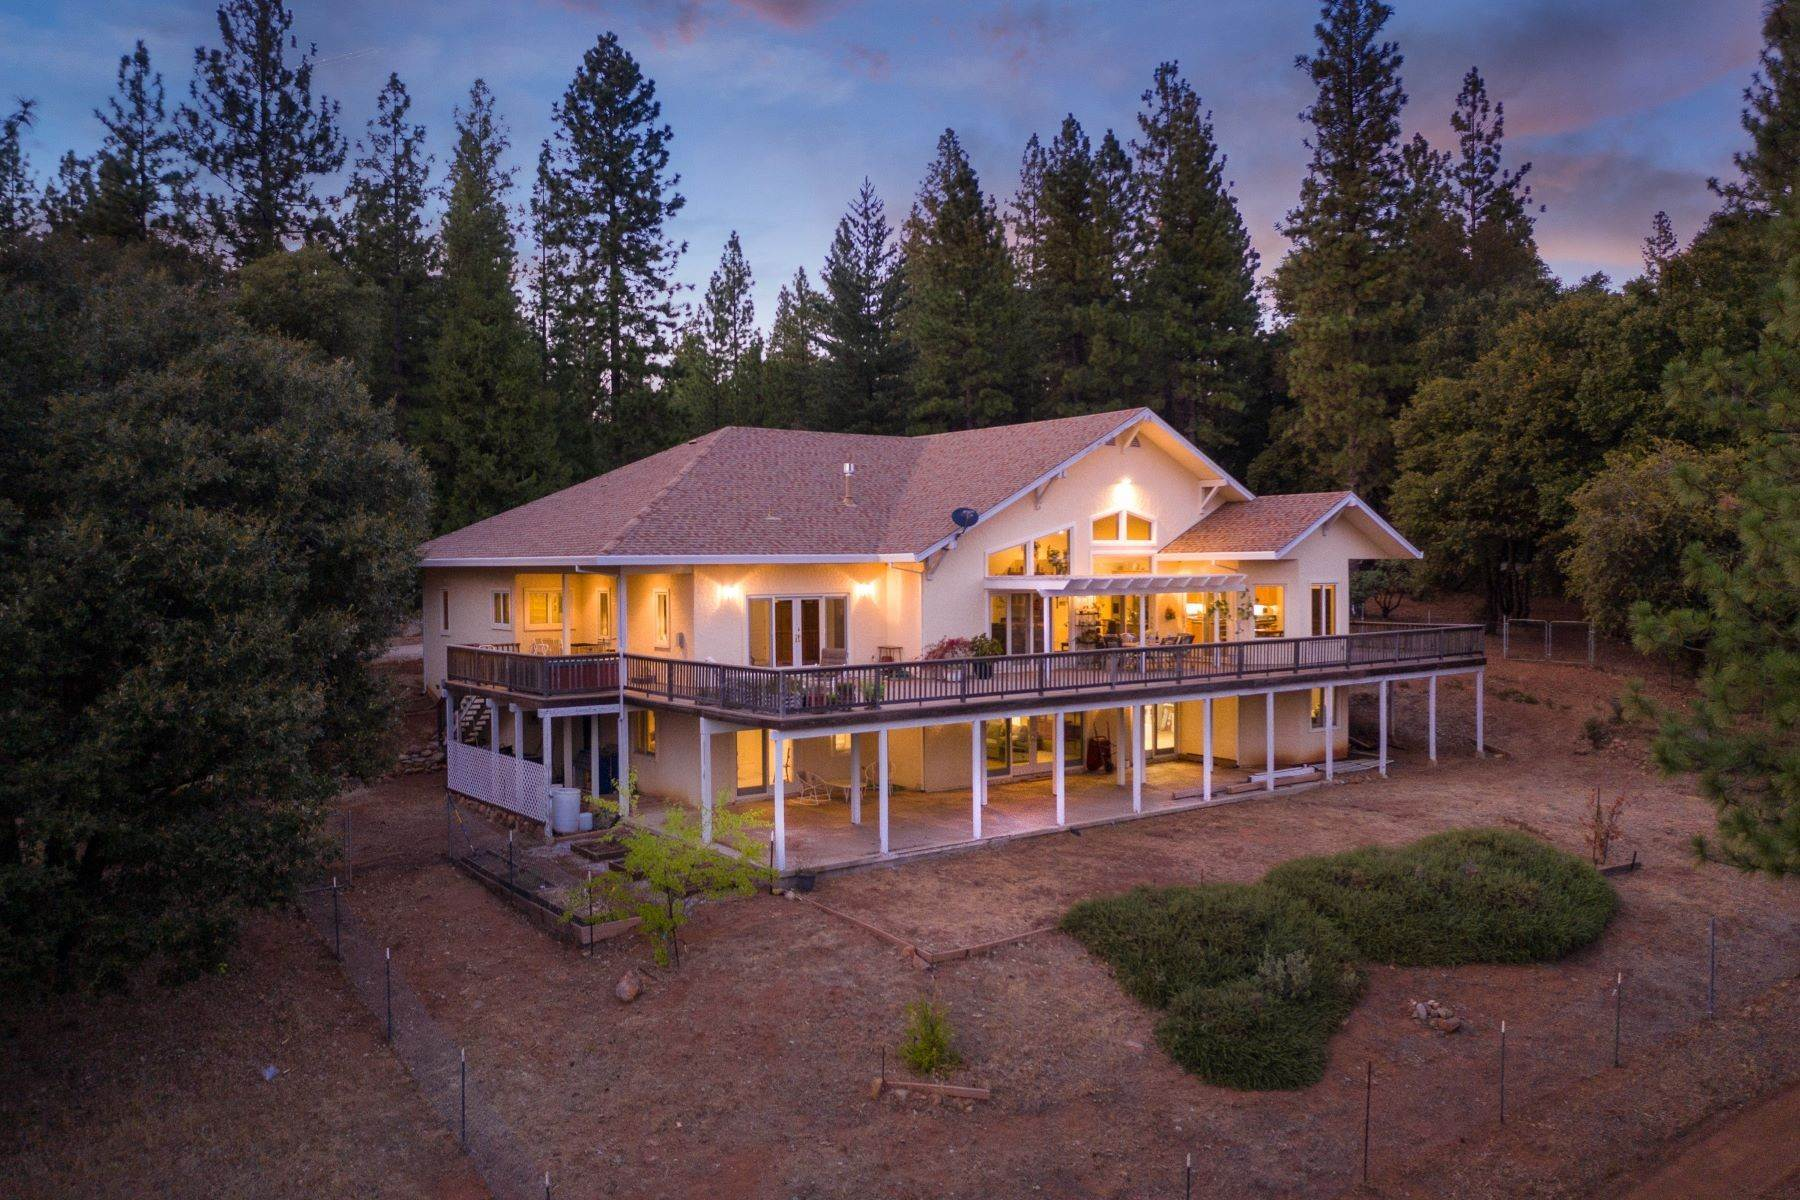 Single Family Homes for Active at Custom Built Home Boasting Over 5,000 sq ft and 30+ Acres 24200 Golden Ridge Drive Volcano, California 95689 United States